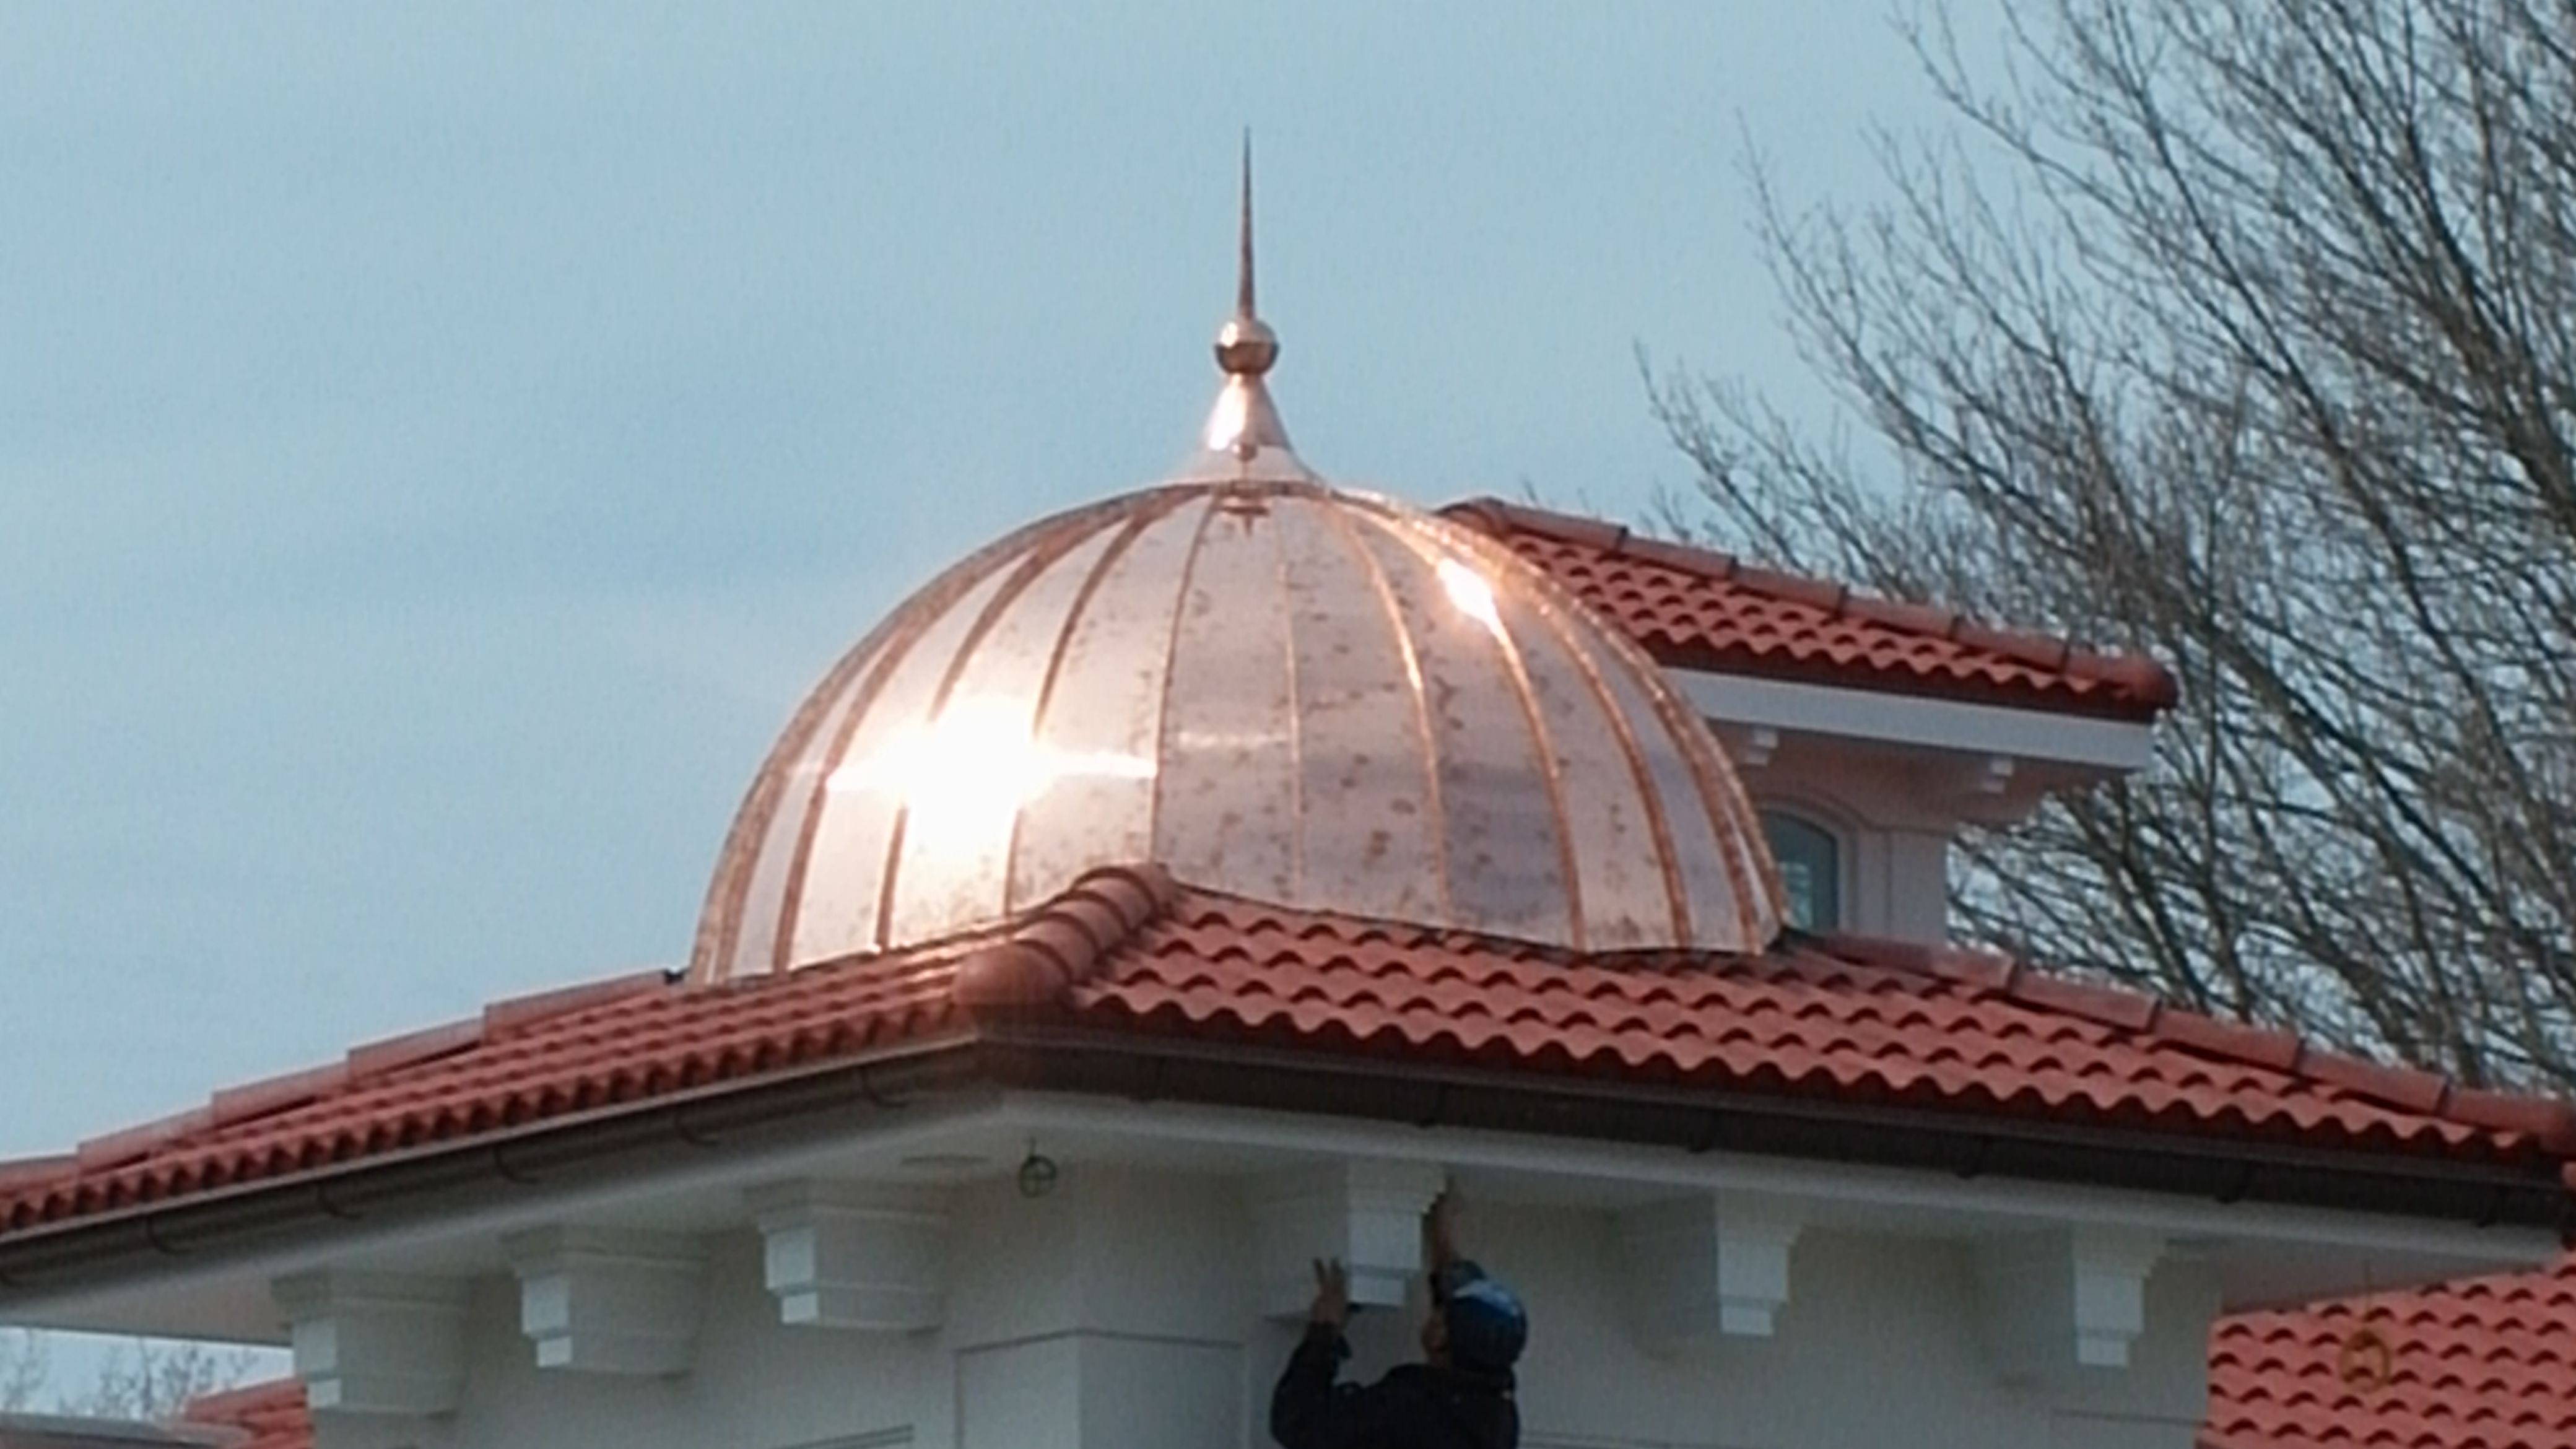 Copper Dome Copper Roof Roof Styles Roofing